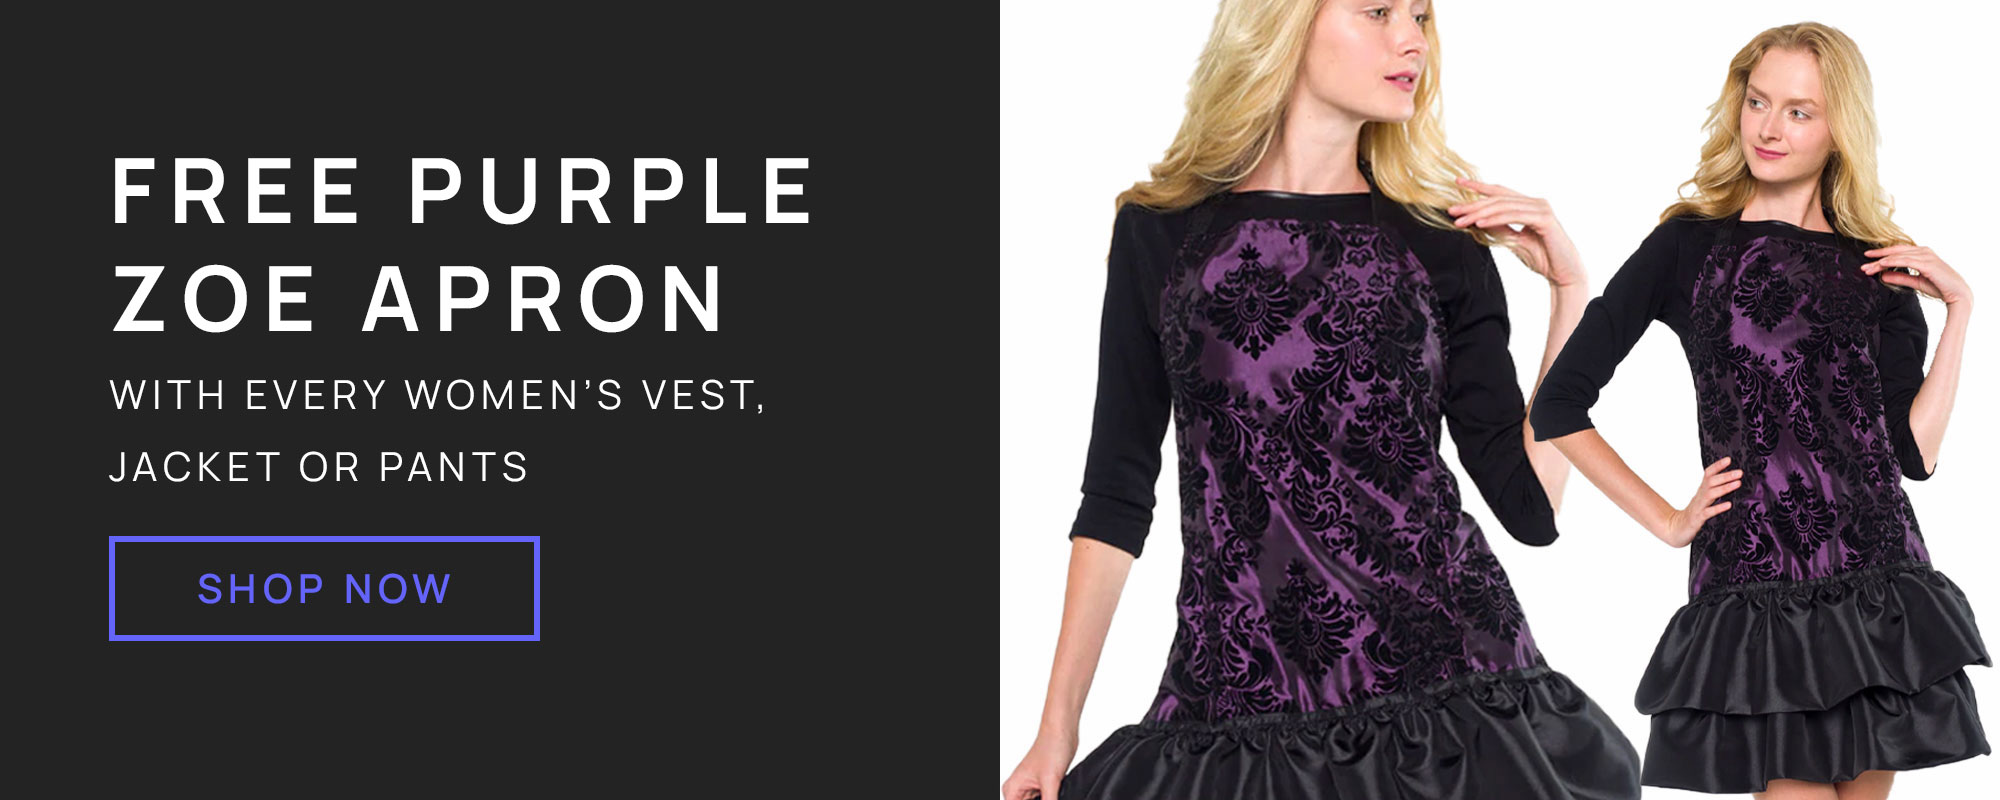 Free Purple Zoe Apron with every women's vest, jacket or pants